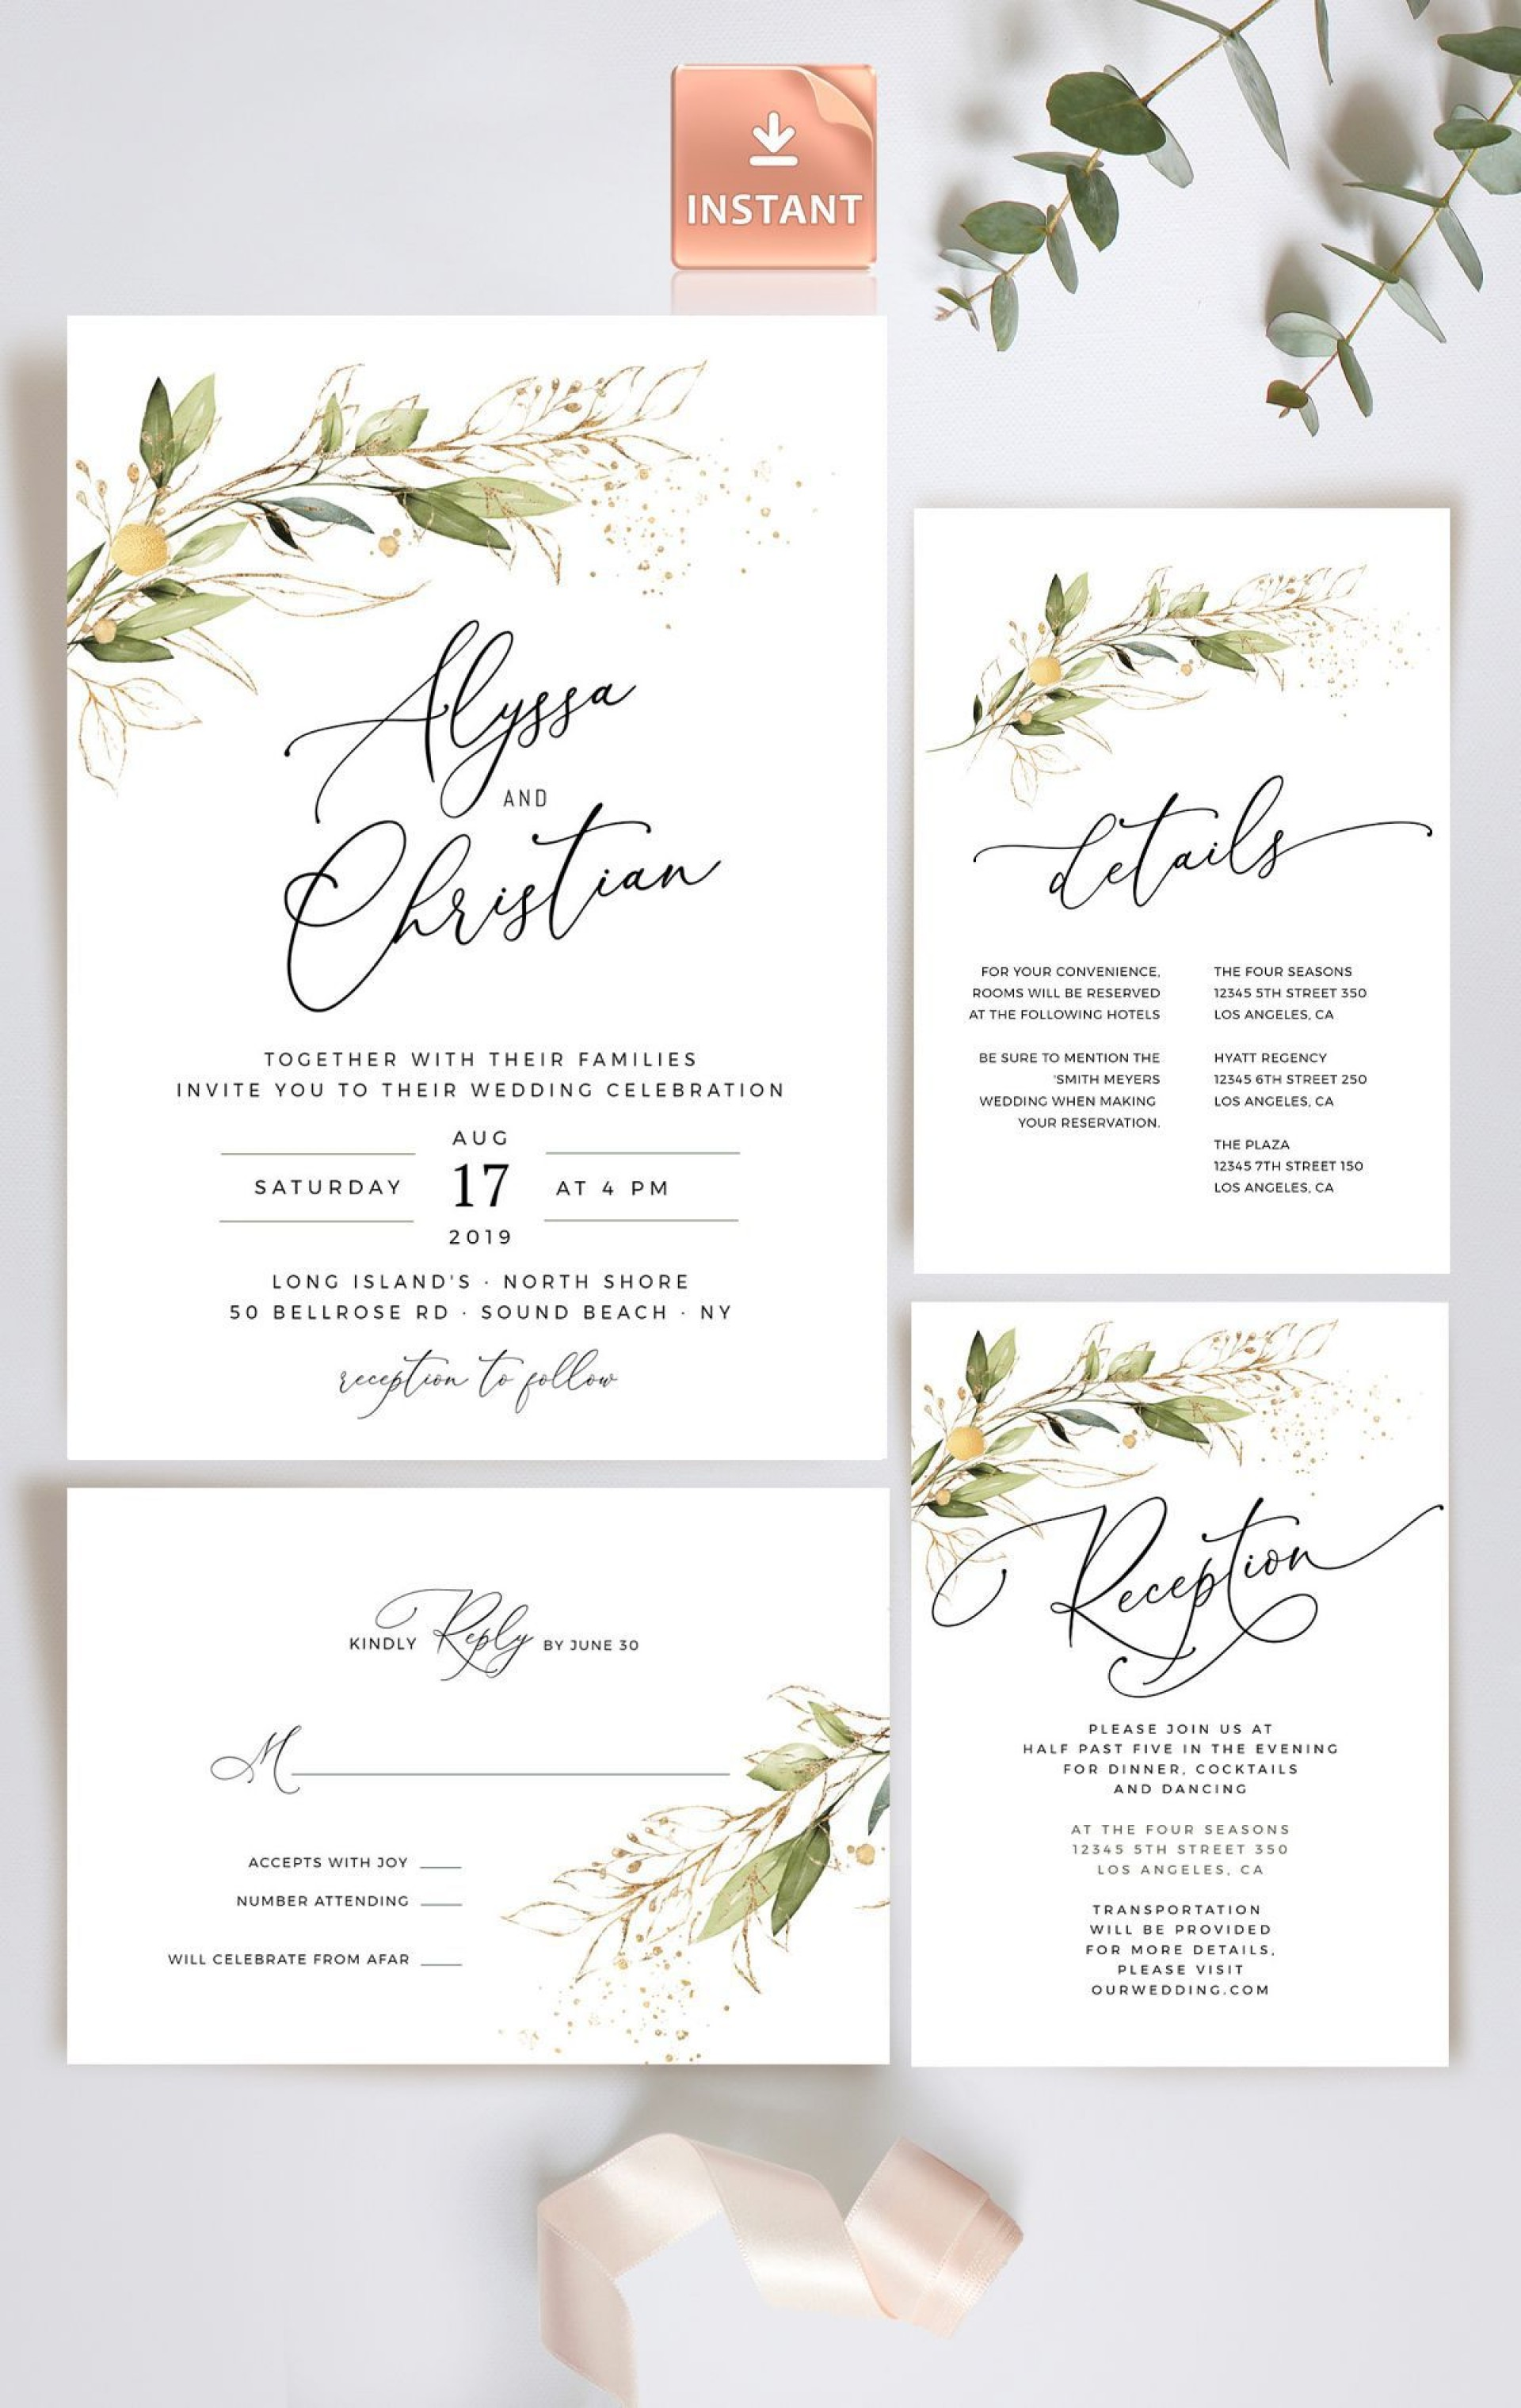 006 Stunning Formal Wedding Invitation Template Highest Clarity  Templates Email Format Wording Free1920